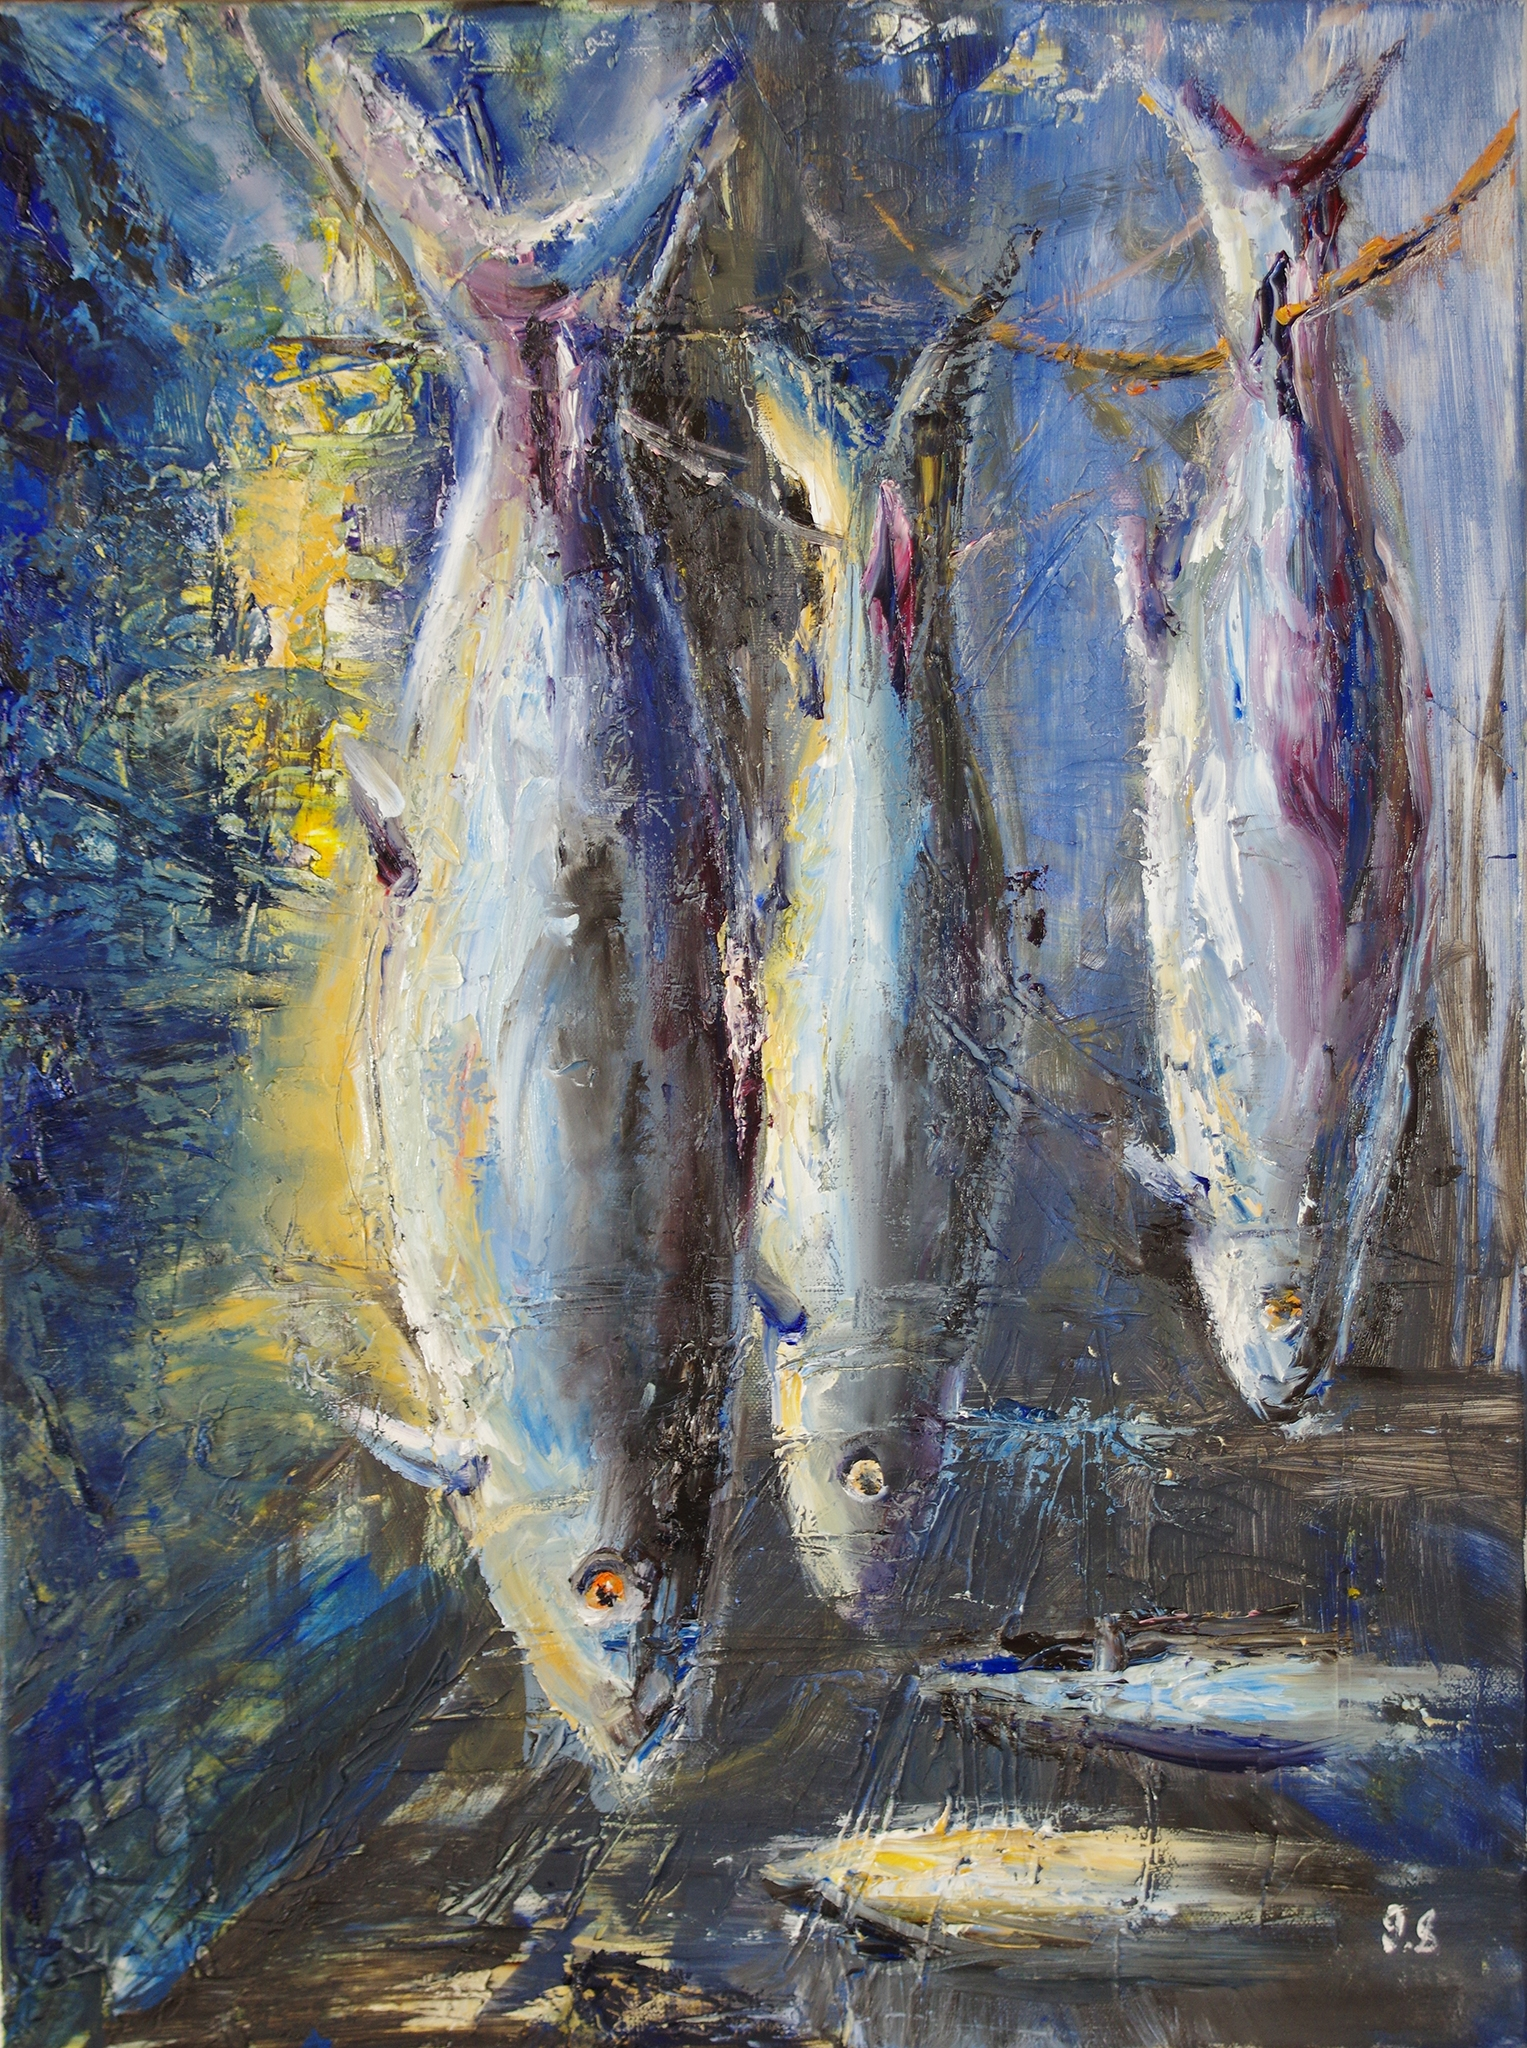 night Fish market - oil on canvas24